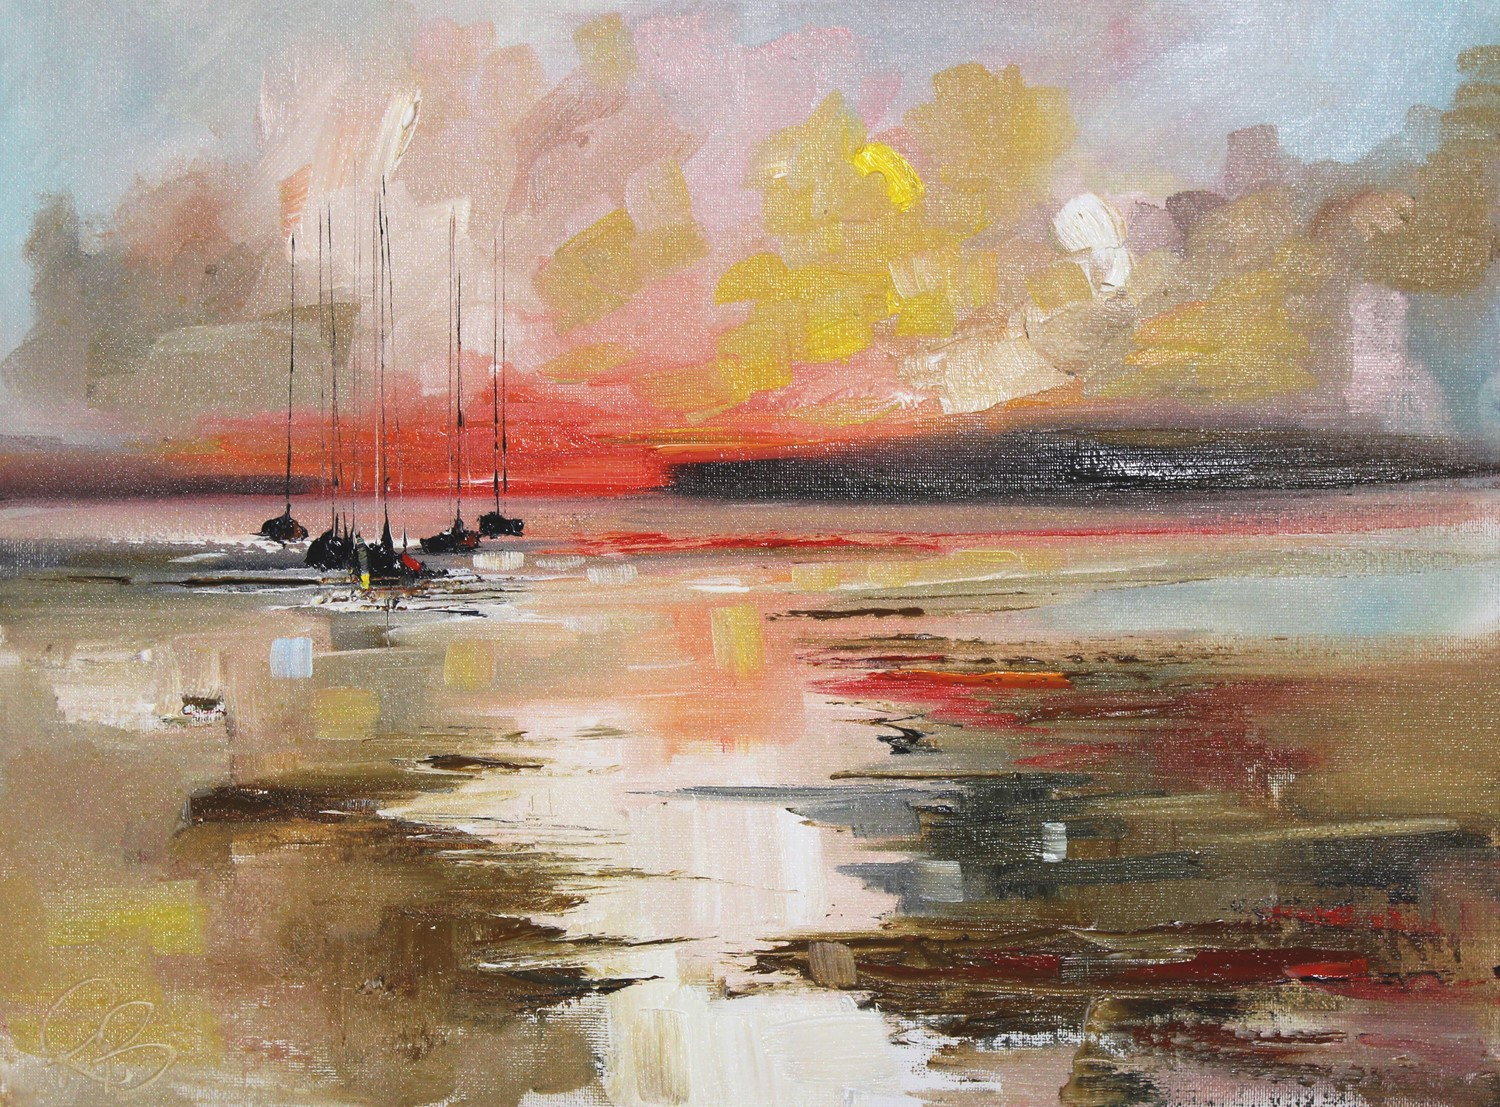 'Homeward as the Sunsets' by artist Rosanne Barr